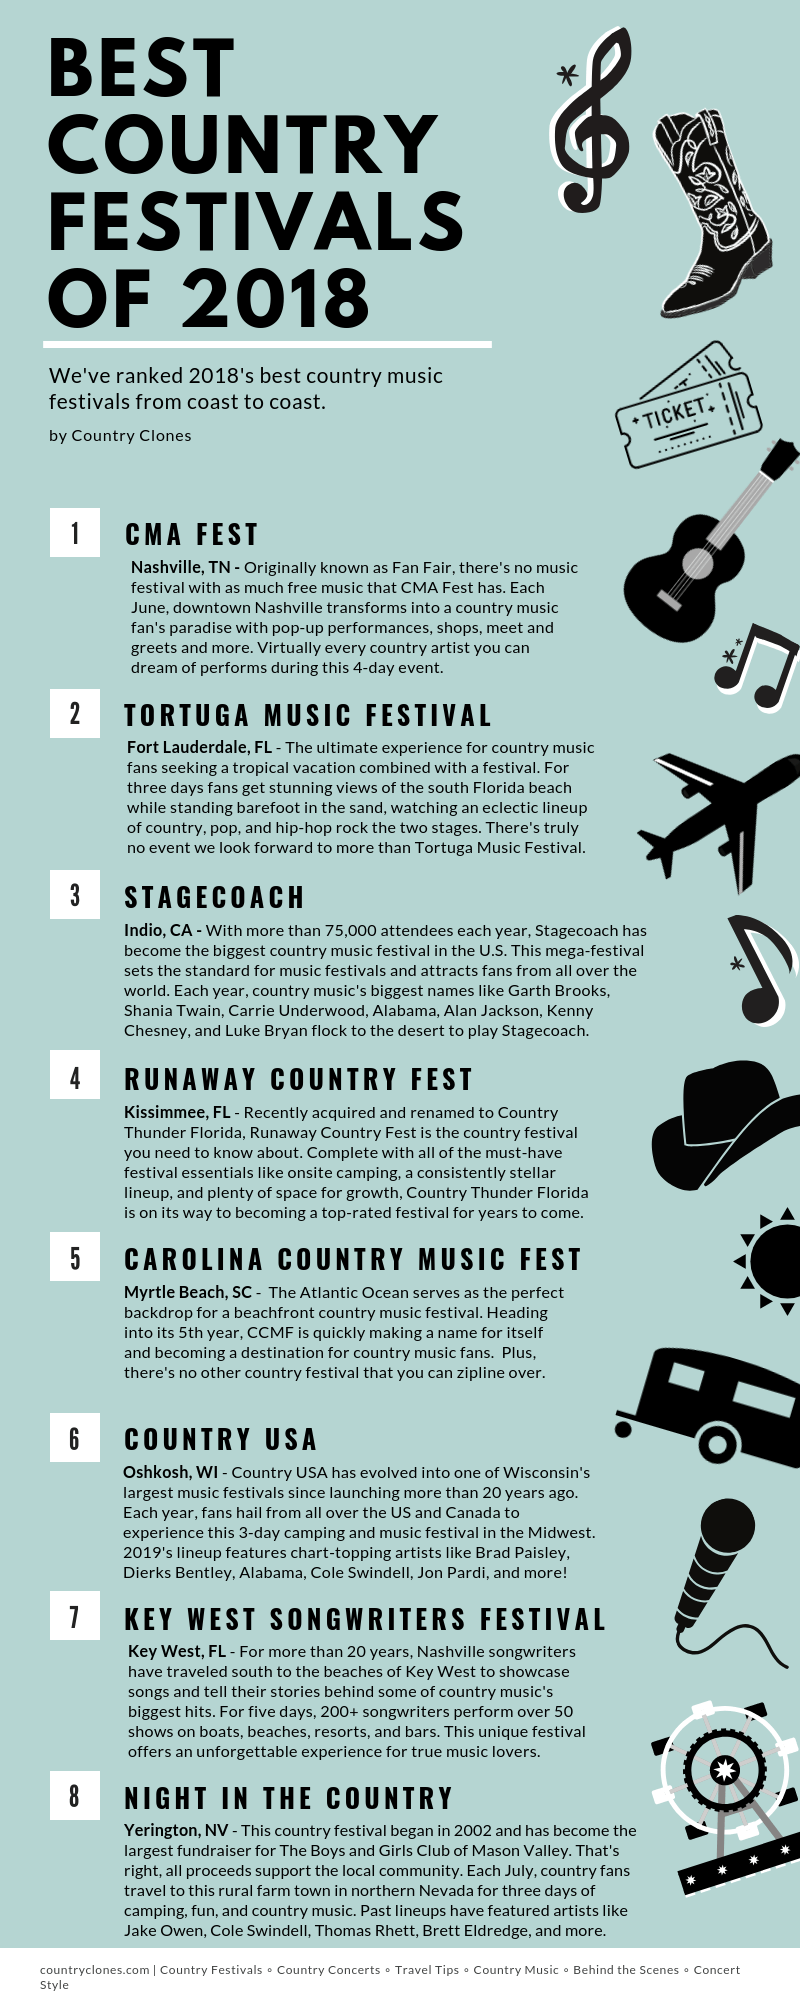 Top country music festivals of 2018